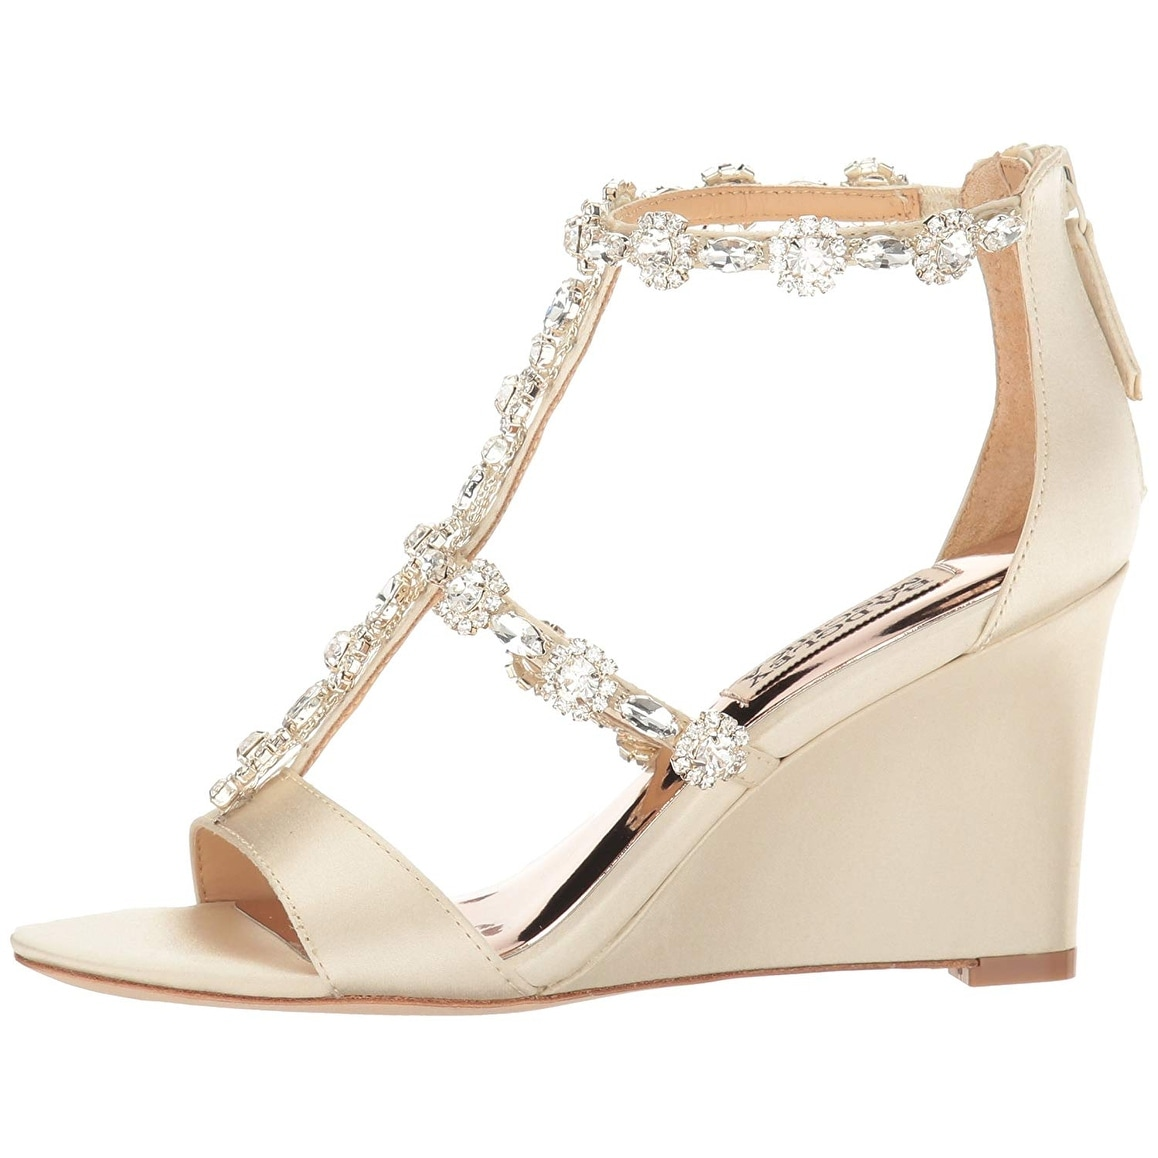 4a3bc5973b0 Shop Badgley Mischka Women s Tabby Wedge Sandal - Free Shipping Today -  Overstock - 25457831